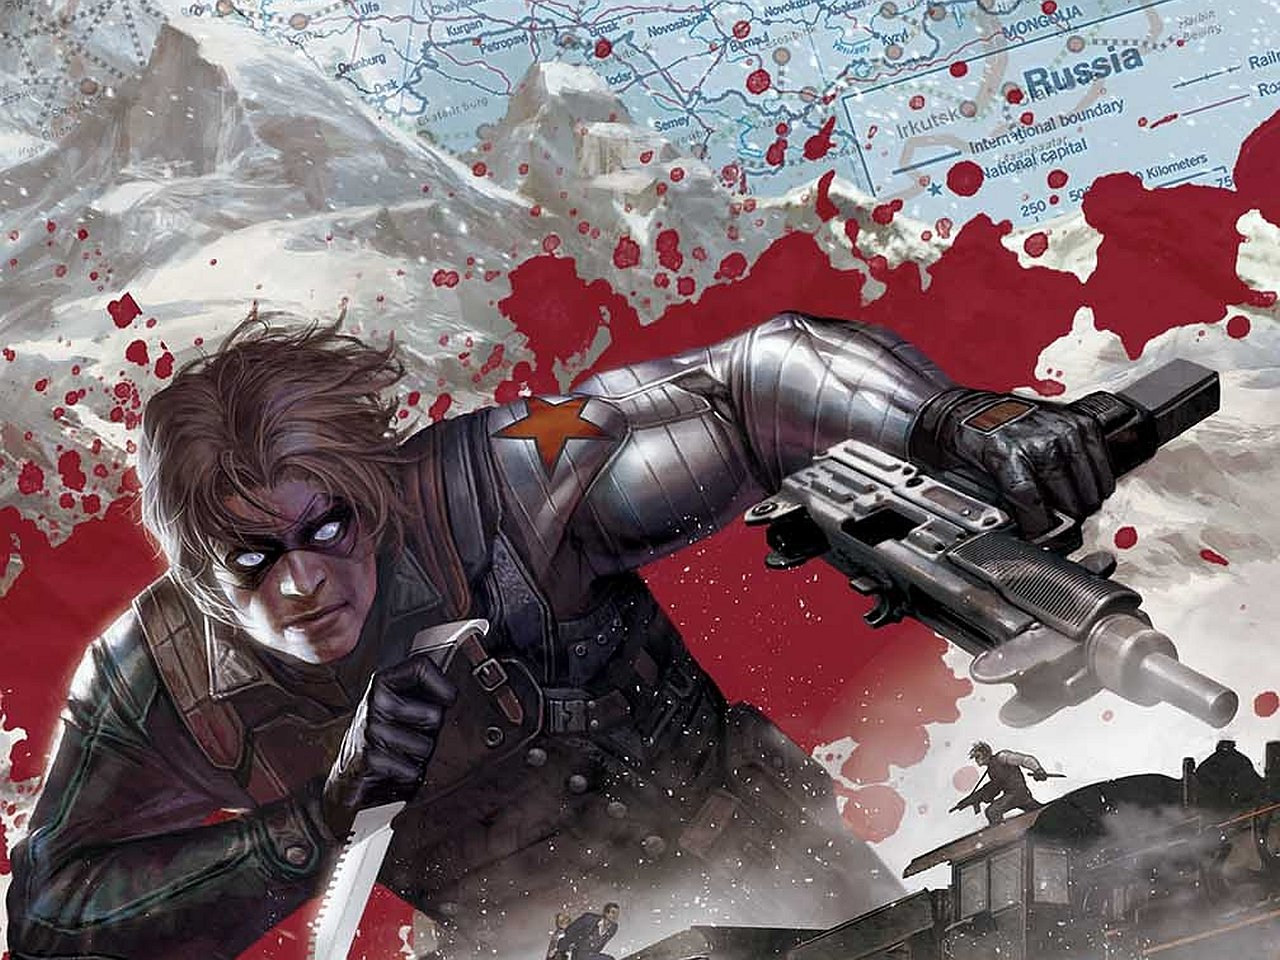 IamKyon images The Winter Soldier HD wallpaper and background photos 1280x960